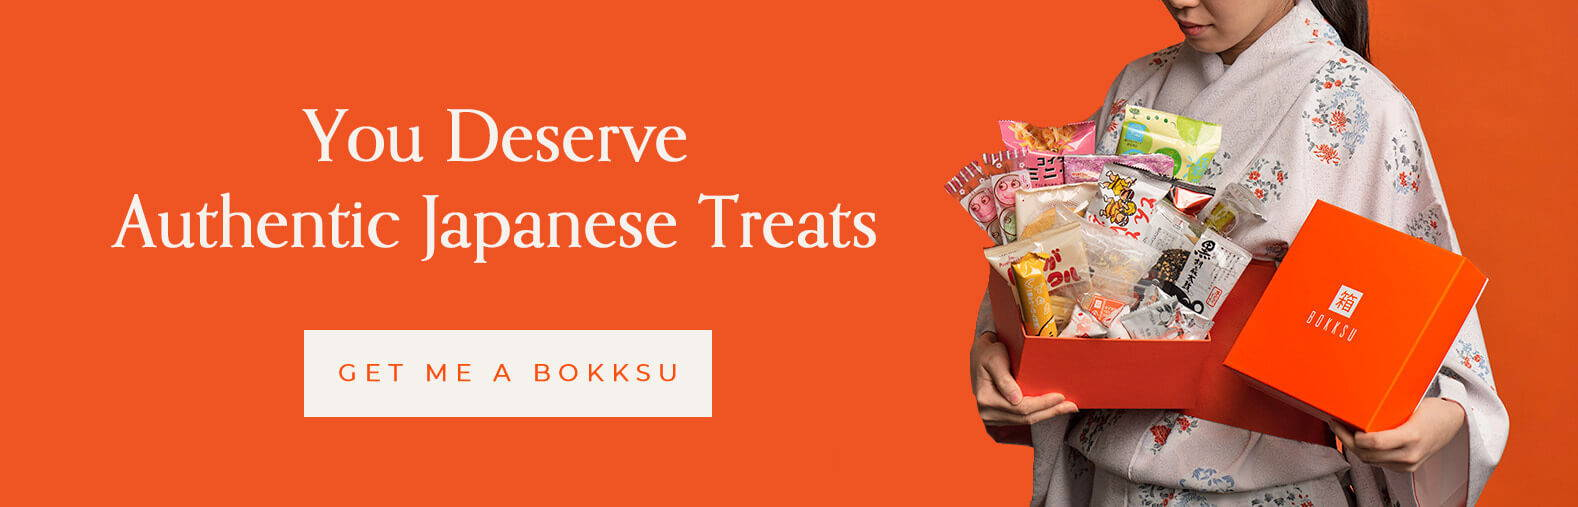 You deserve authentic Japanese treats